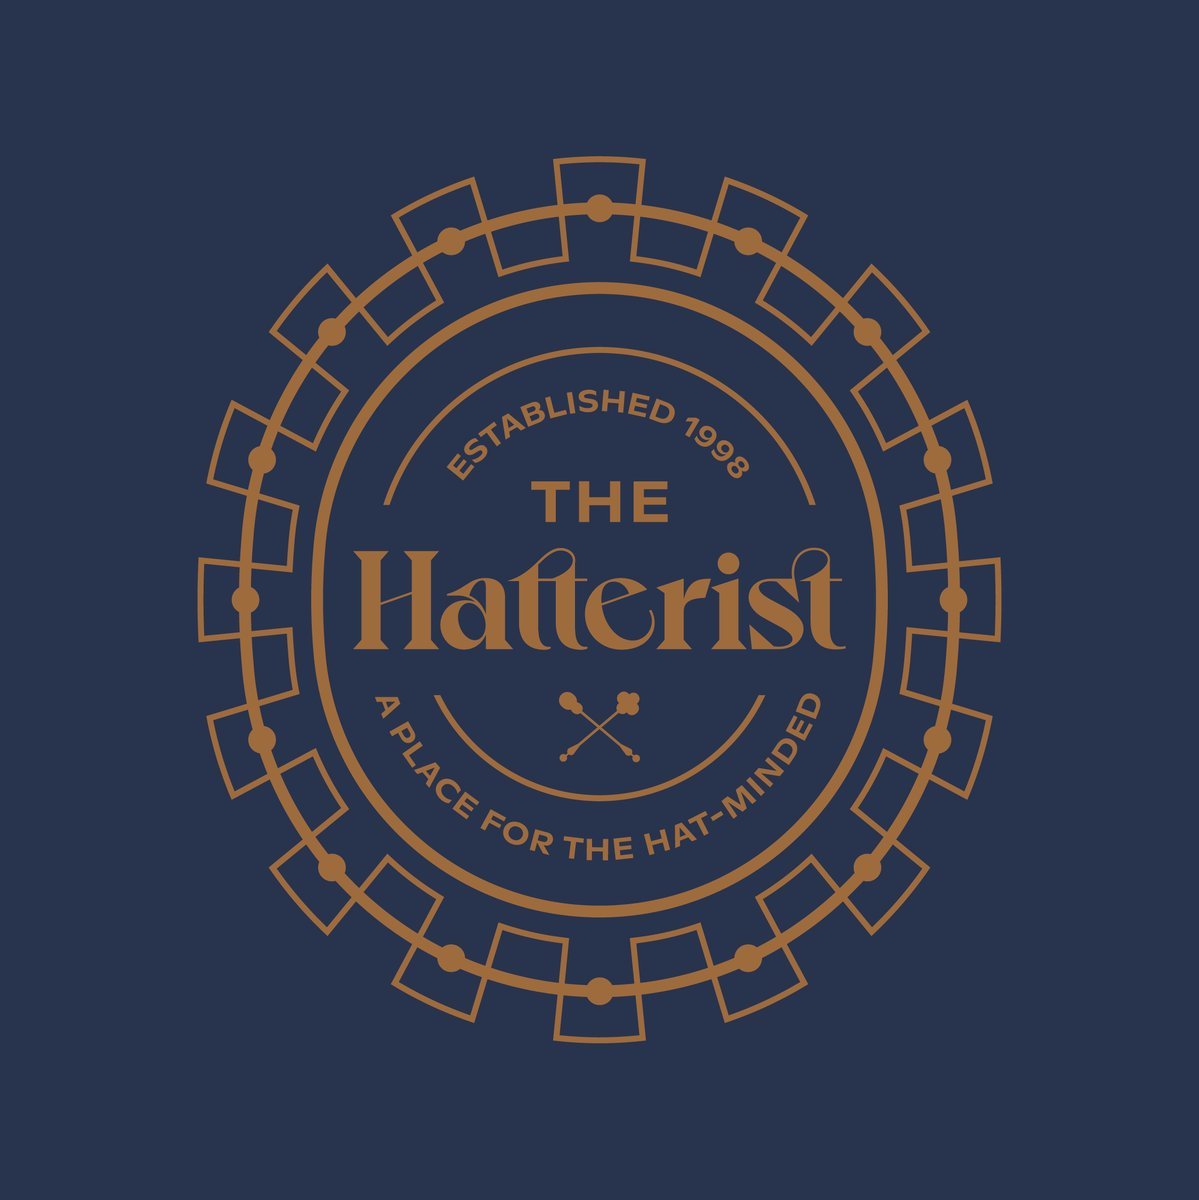 🎩👒🧢 Cheers to our friends at The Hatterist and all the hat-minded people on this #NationalHatDay. It was a joy creating a new identity and soon to be released website for this brand that's advancing the headwear industry and making hat lovers of us all.